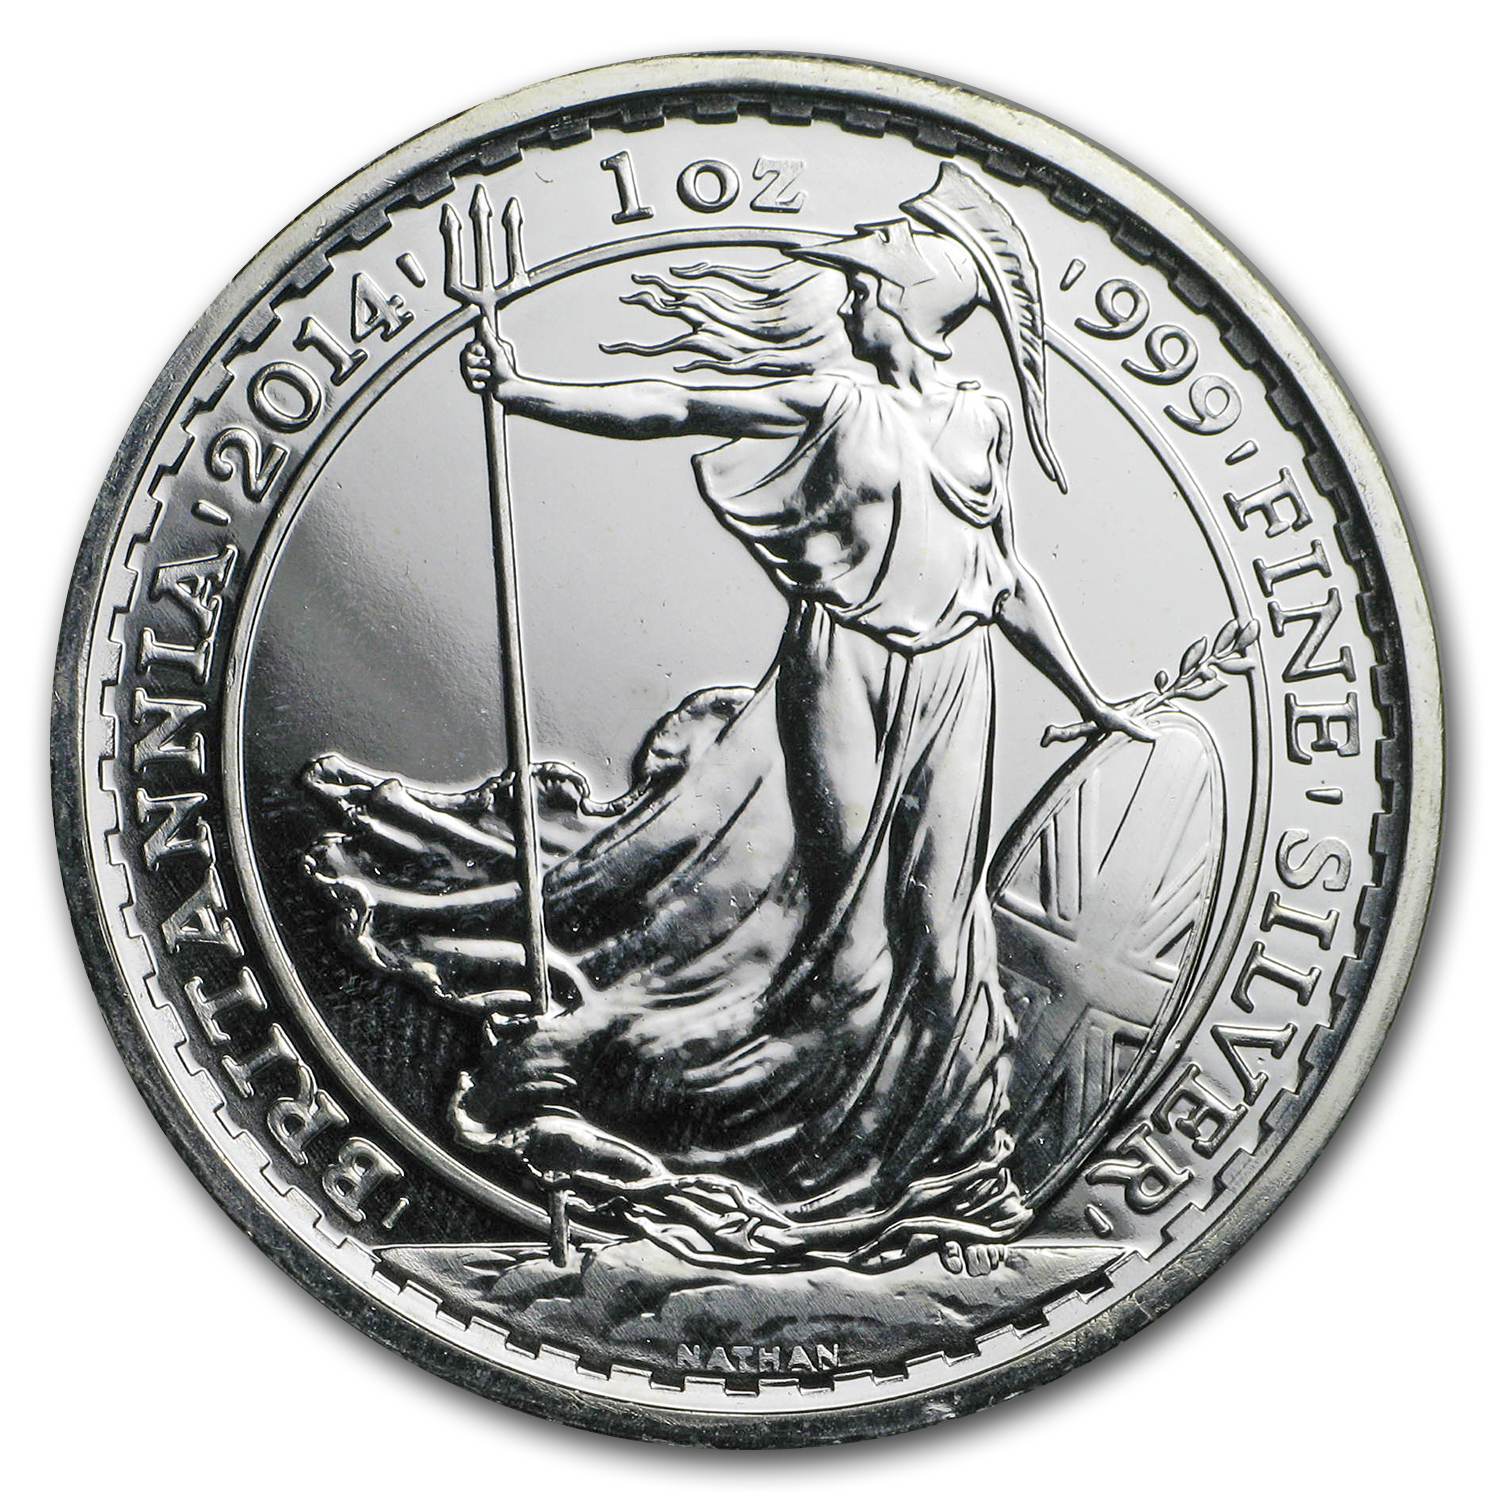 2014 1 oz Silver Britannia Year of the Horse Privy (Abrasions)